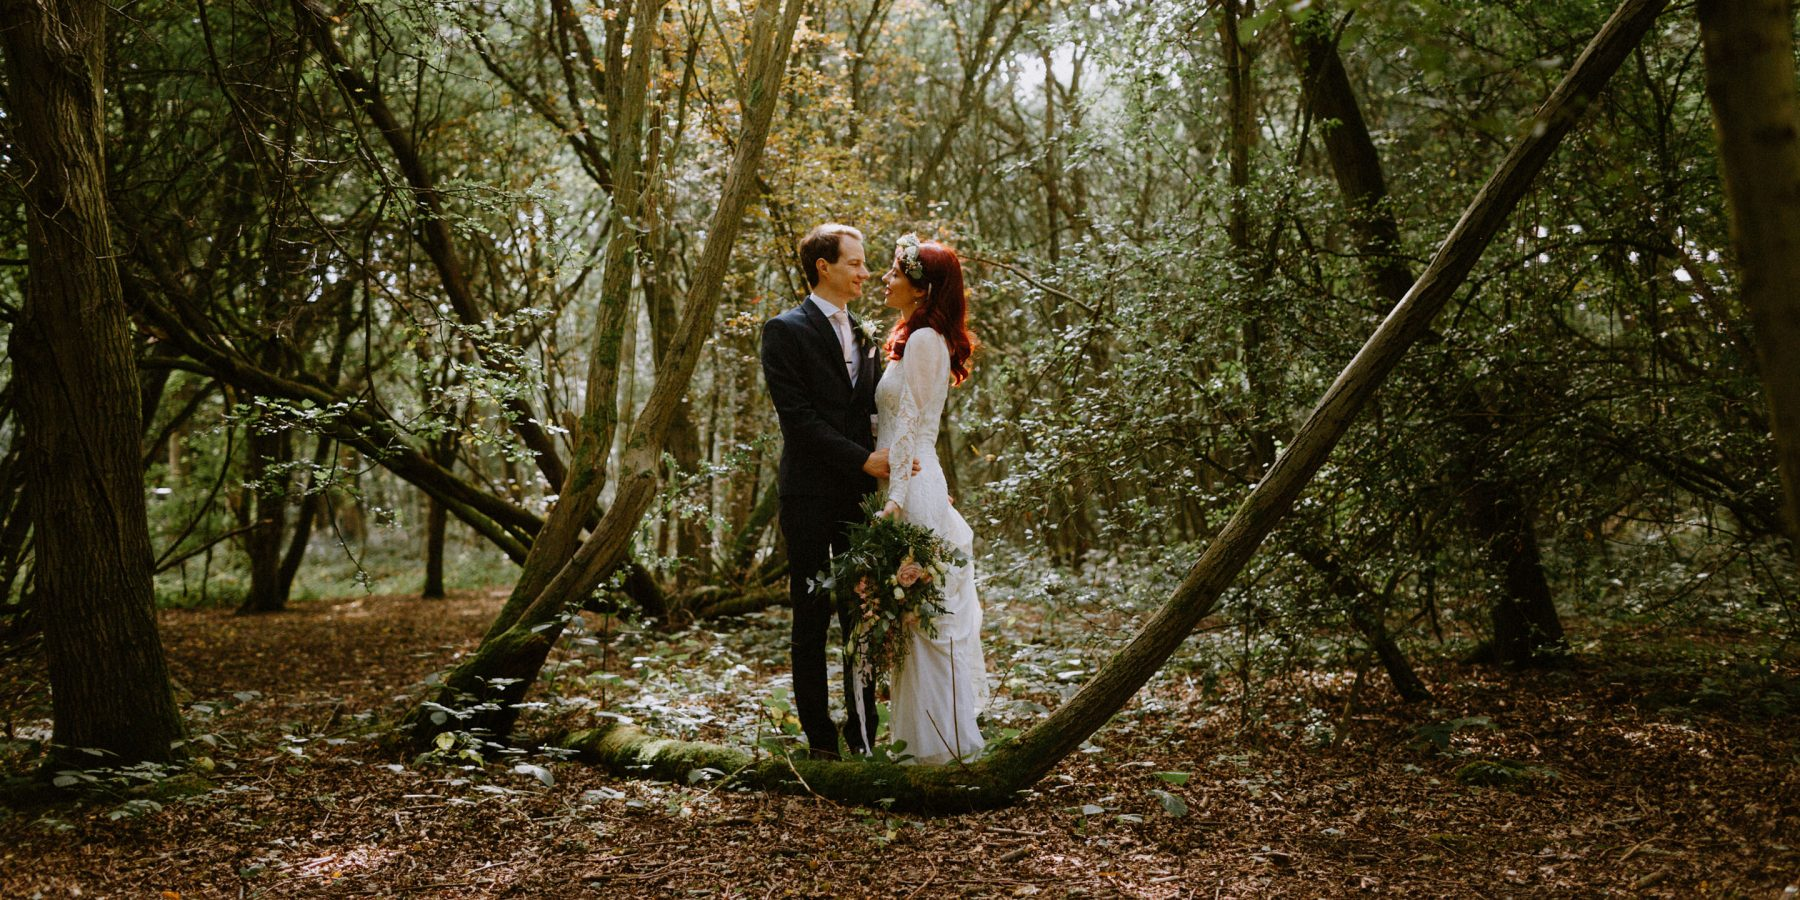 Essex Wedding Photographer Woodland wedding couple